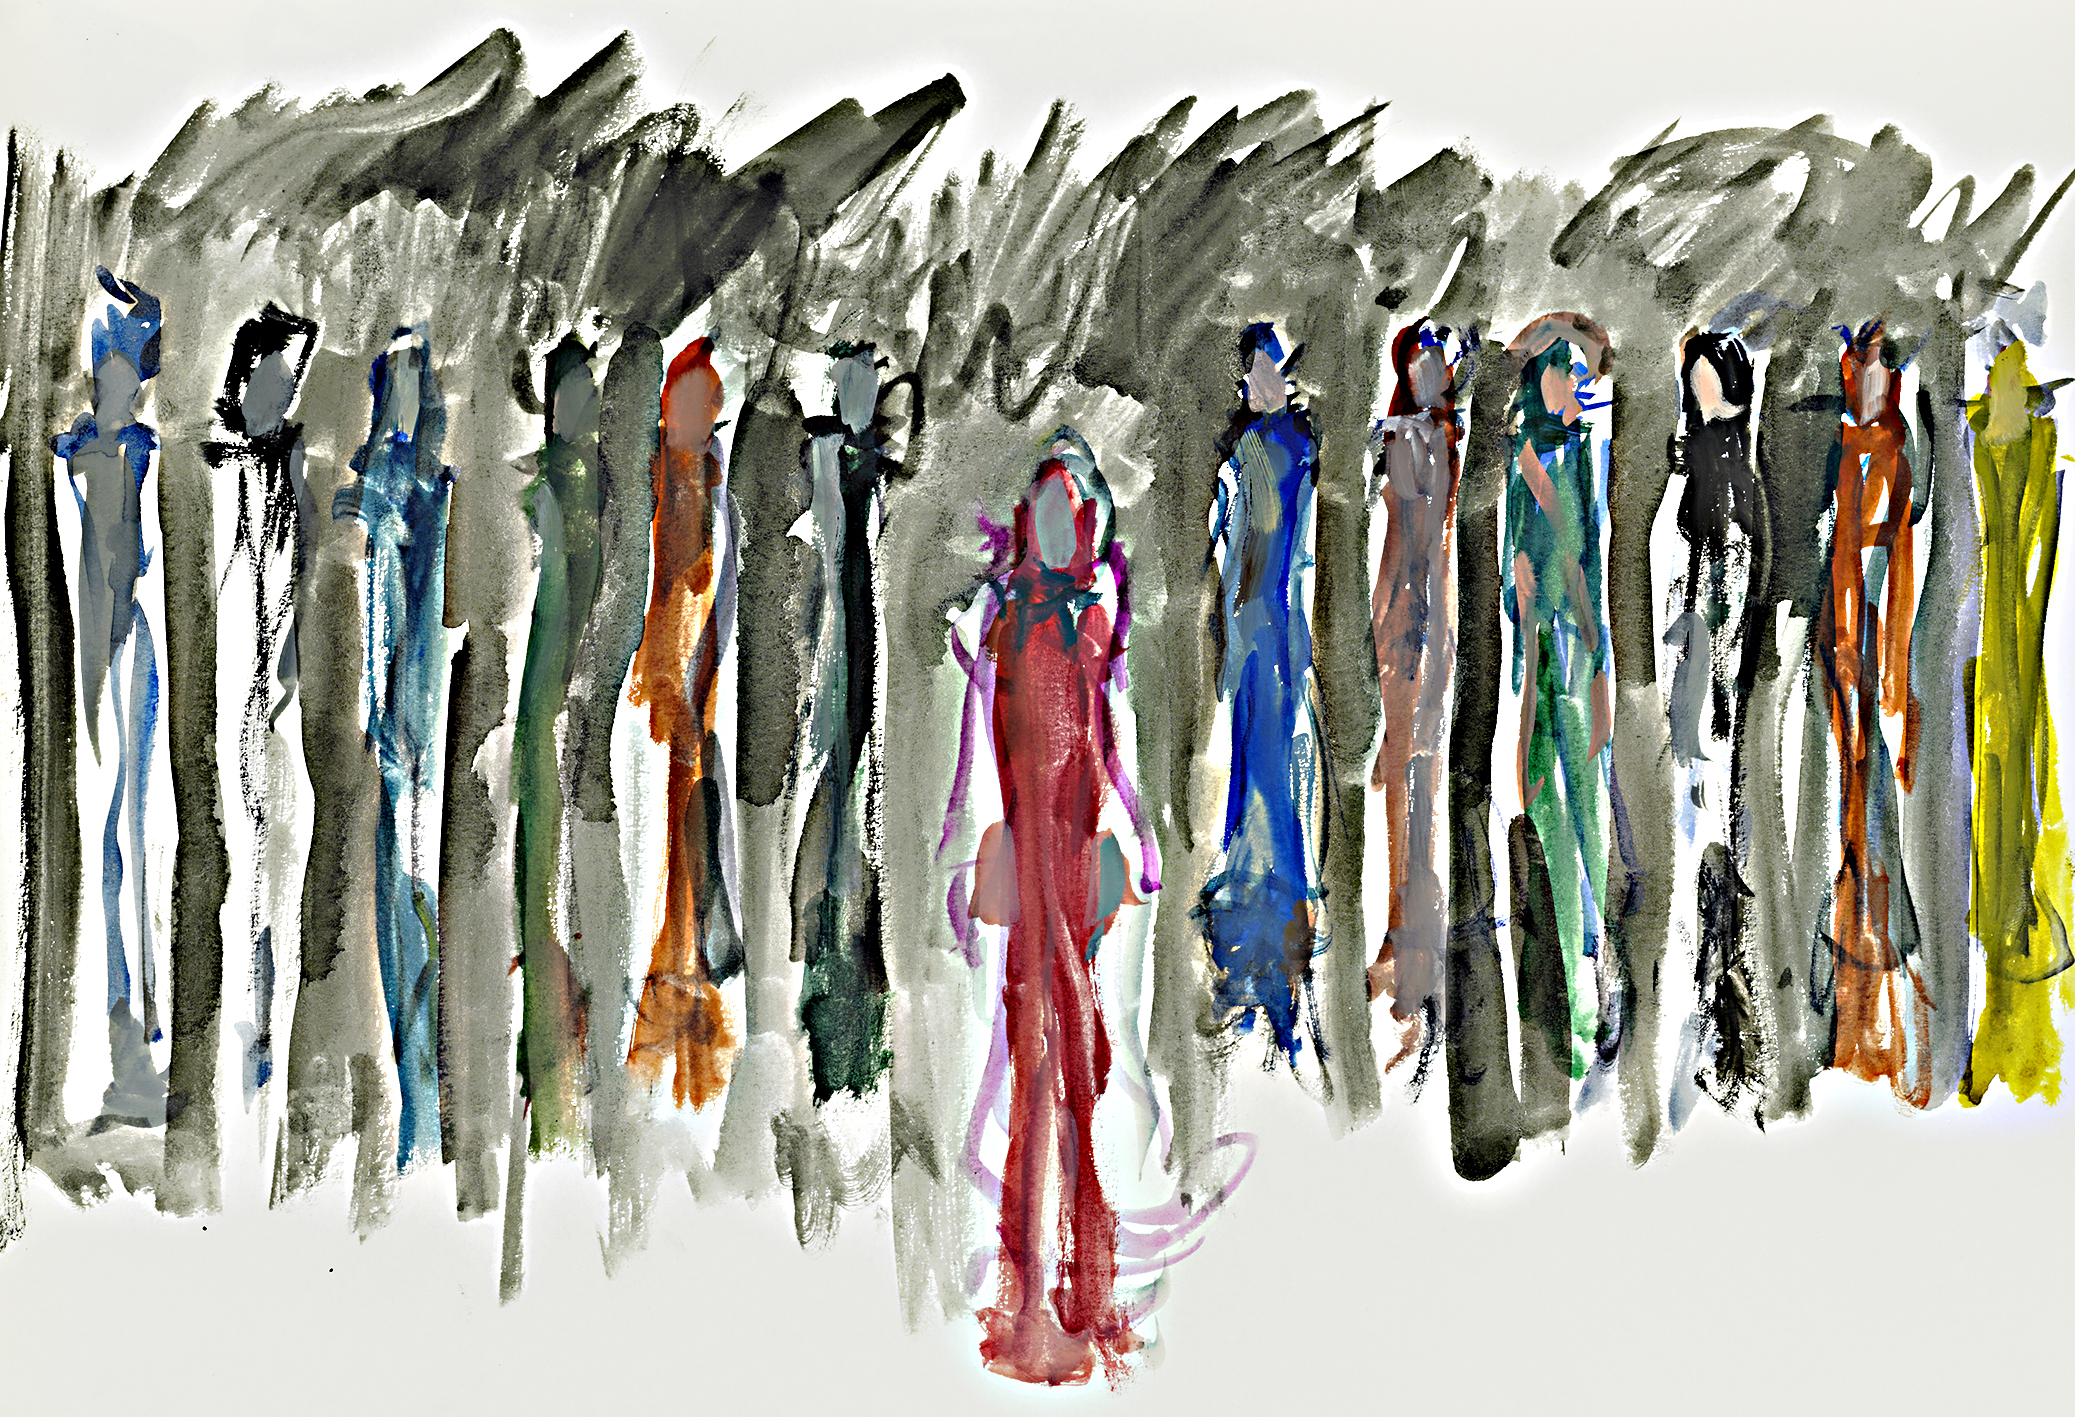 Christ and the apostles,Milan  watercolour on paper  £200  approx 30 by 40 cm